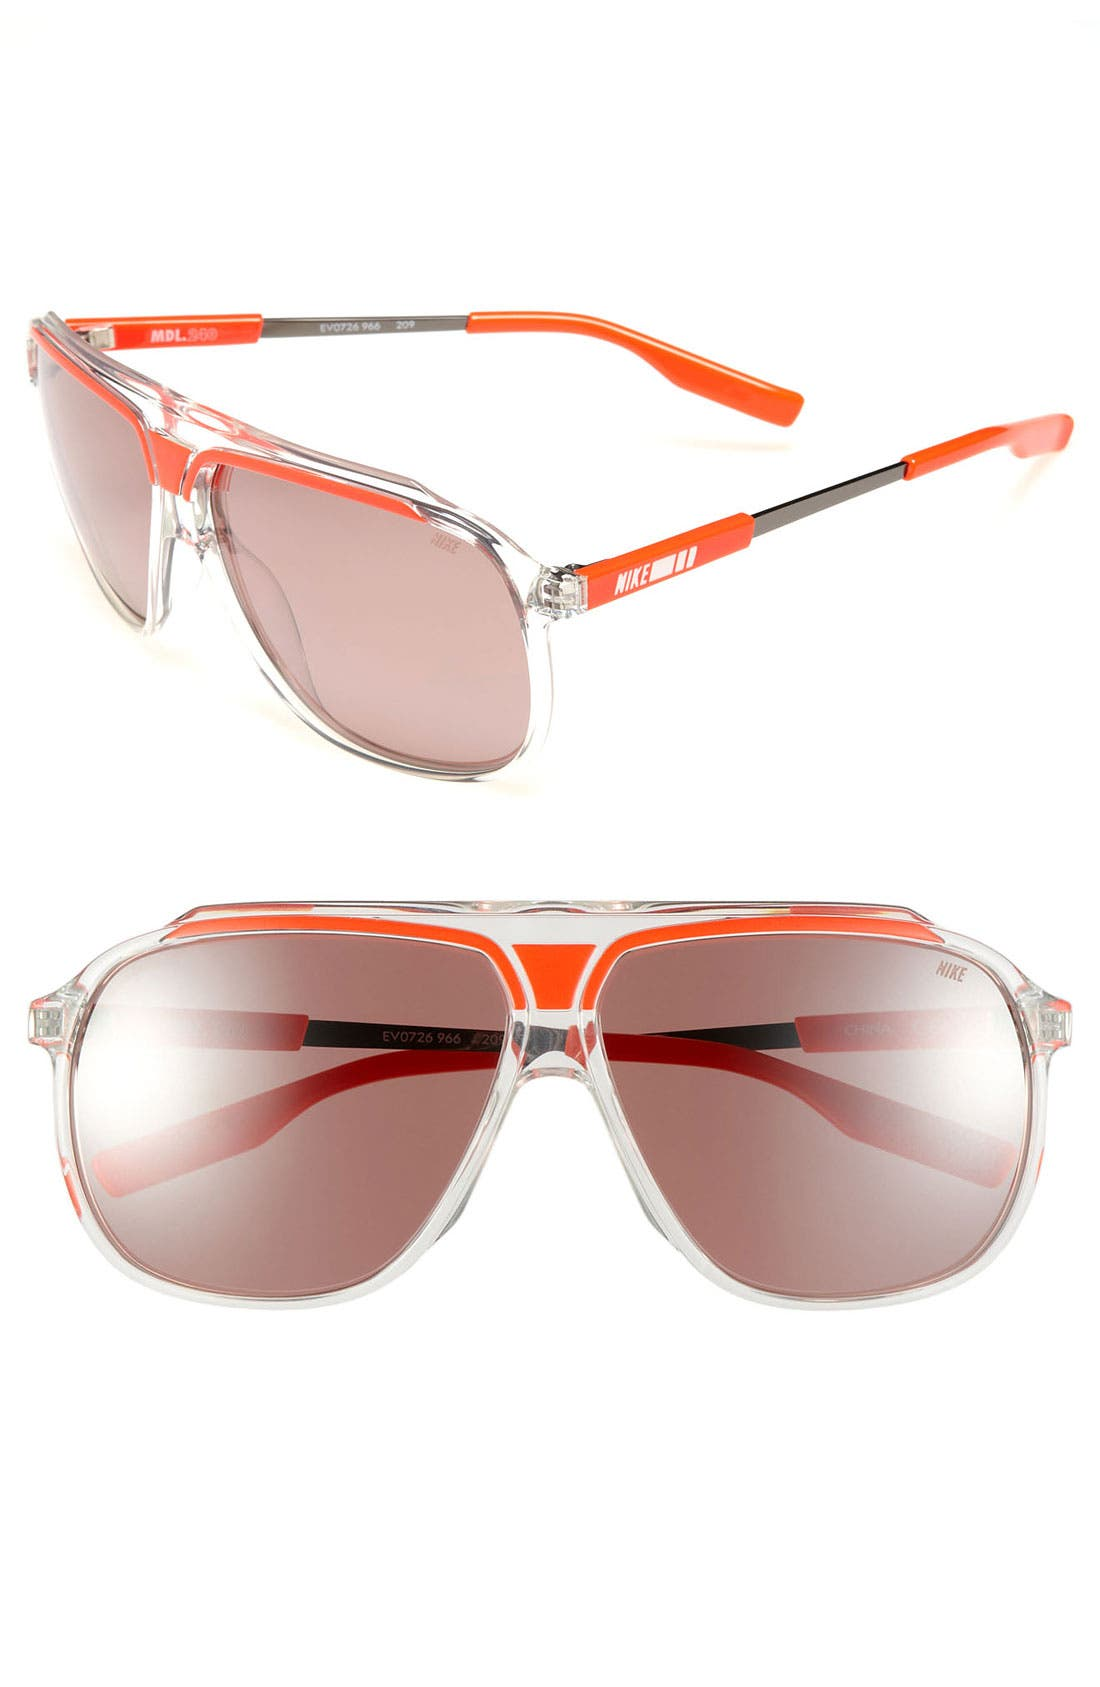 Main Image - Nike 63mm Aviator Sunglasses